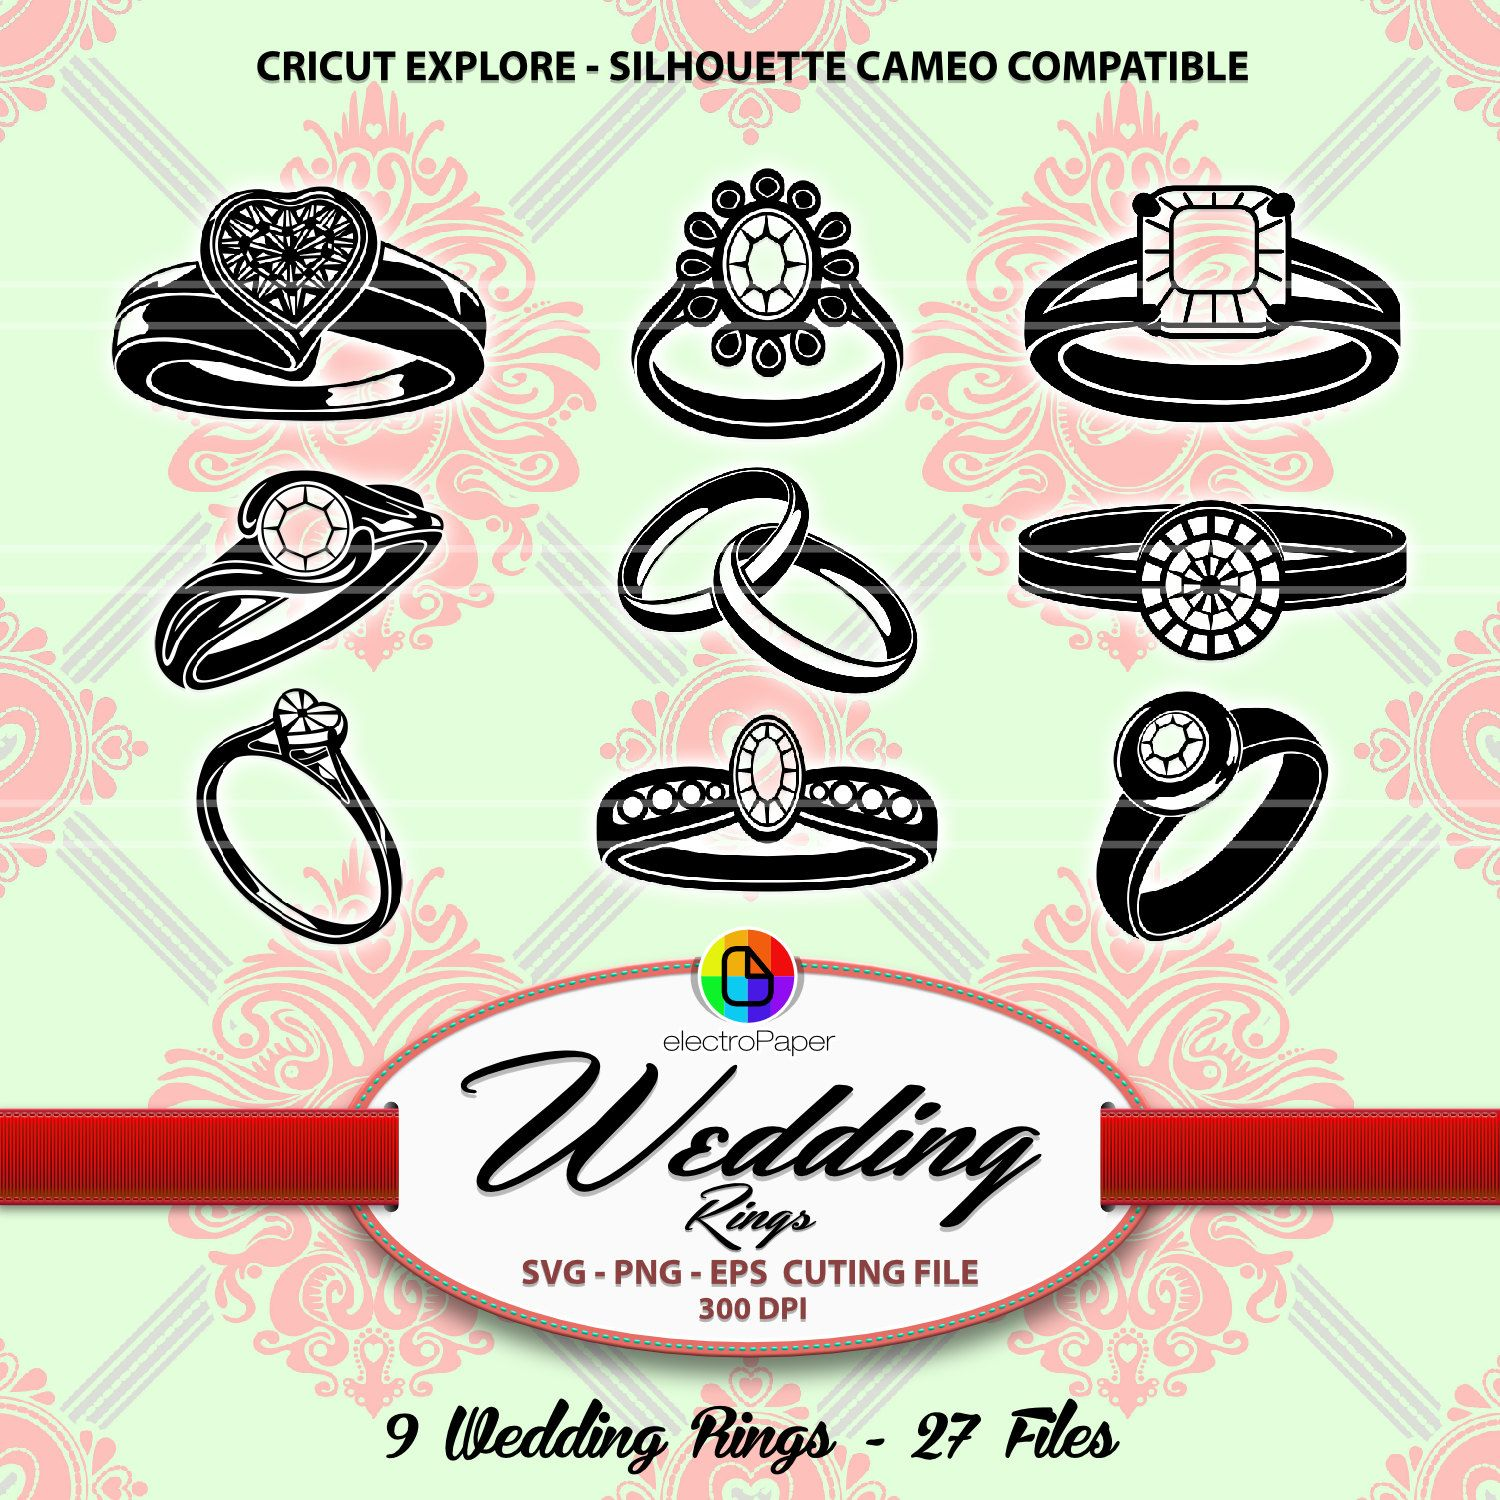 Wedding Rings - Clipart Die Cut files for Wedding invitation Cardmaking stationery bridal vinyl scrapbooking paper goods PNG SVG EPS de ElectroPaper en Etsy